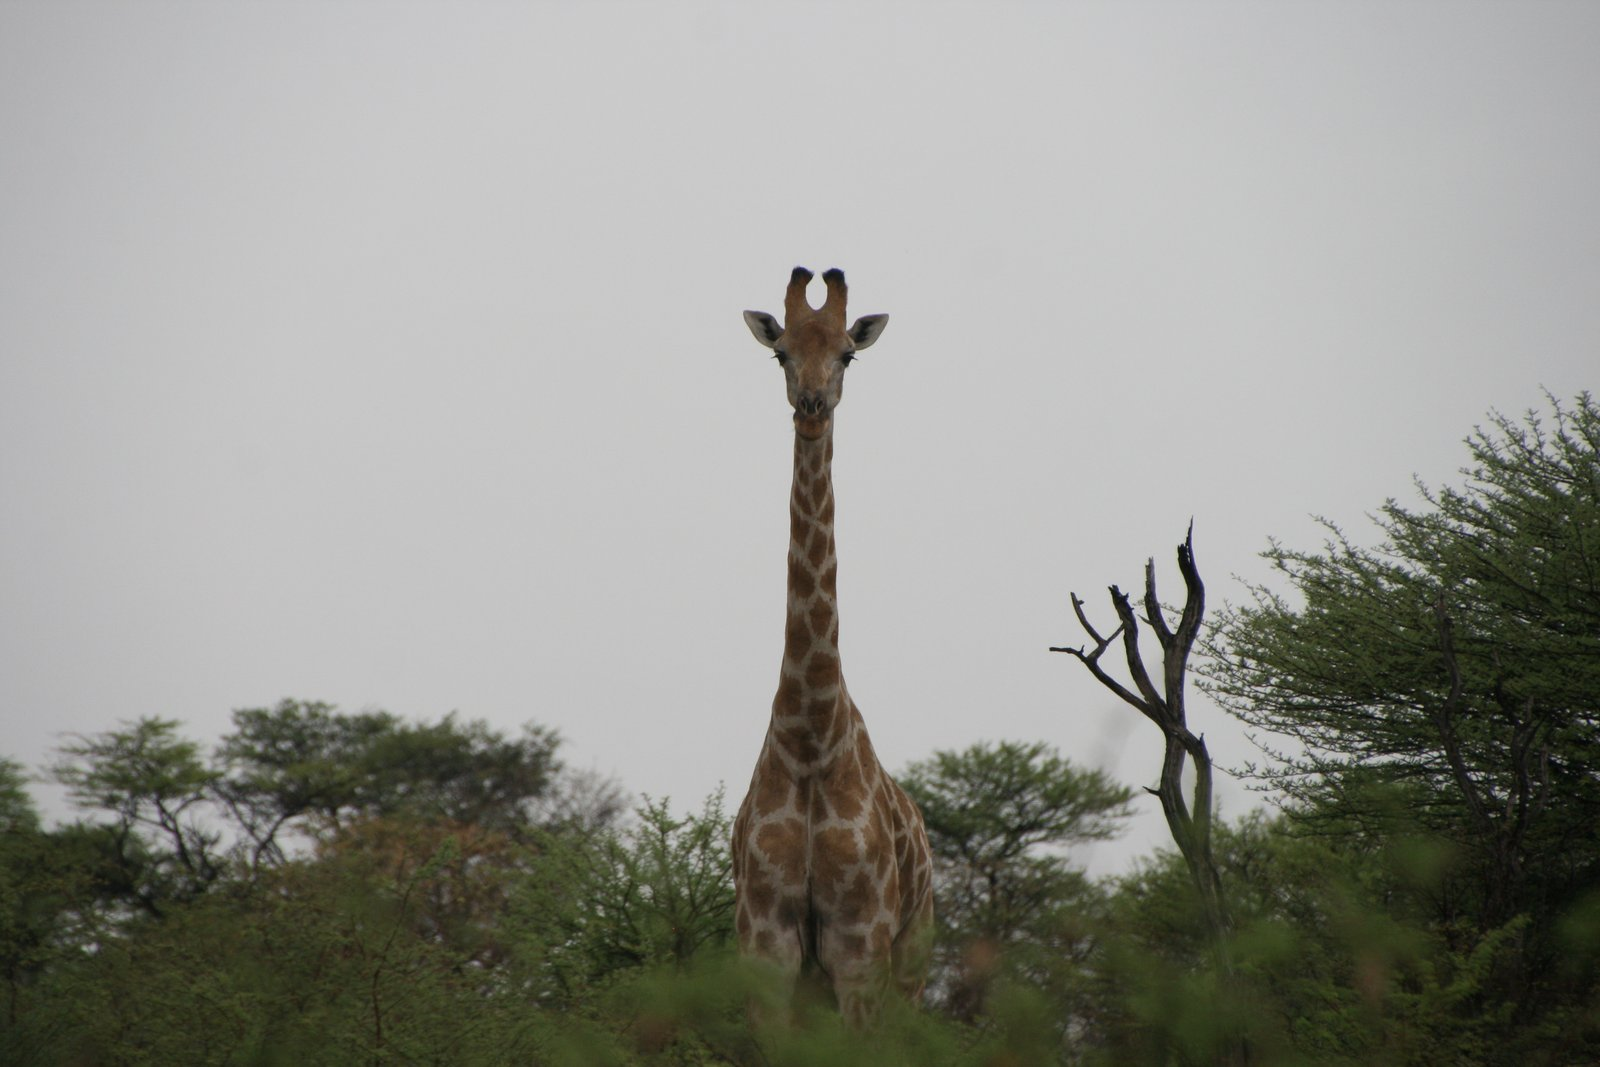 giraffe looking over the trees in the Kalahari desert